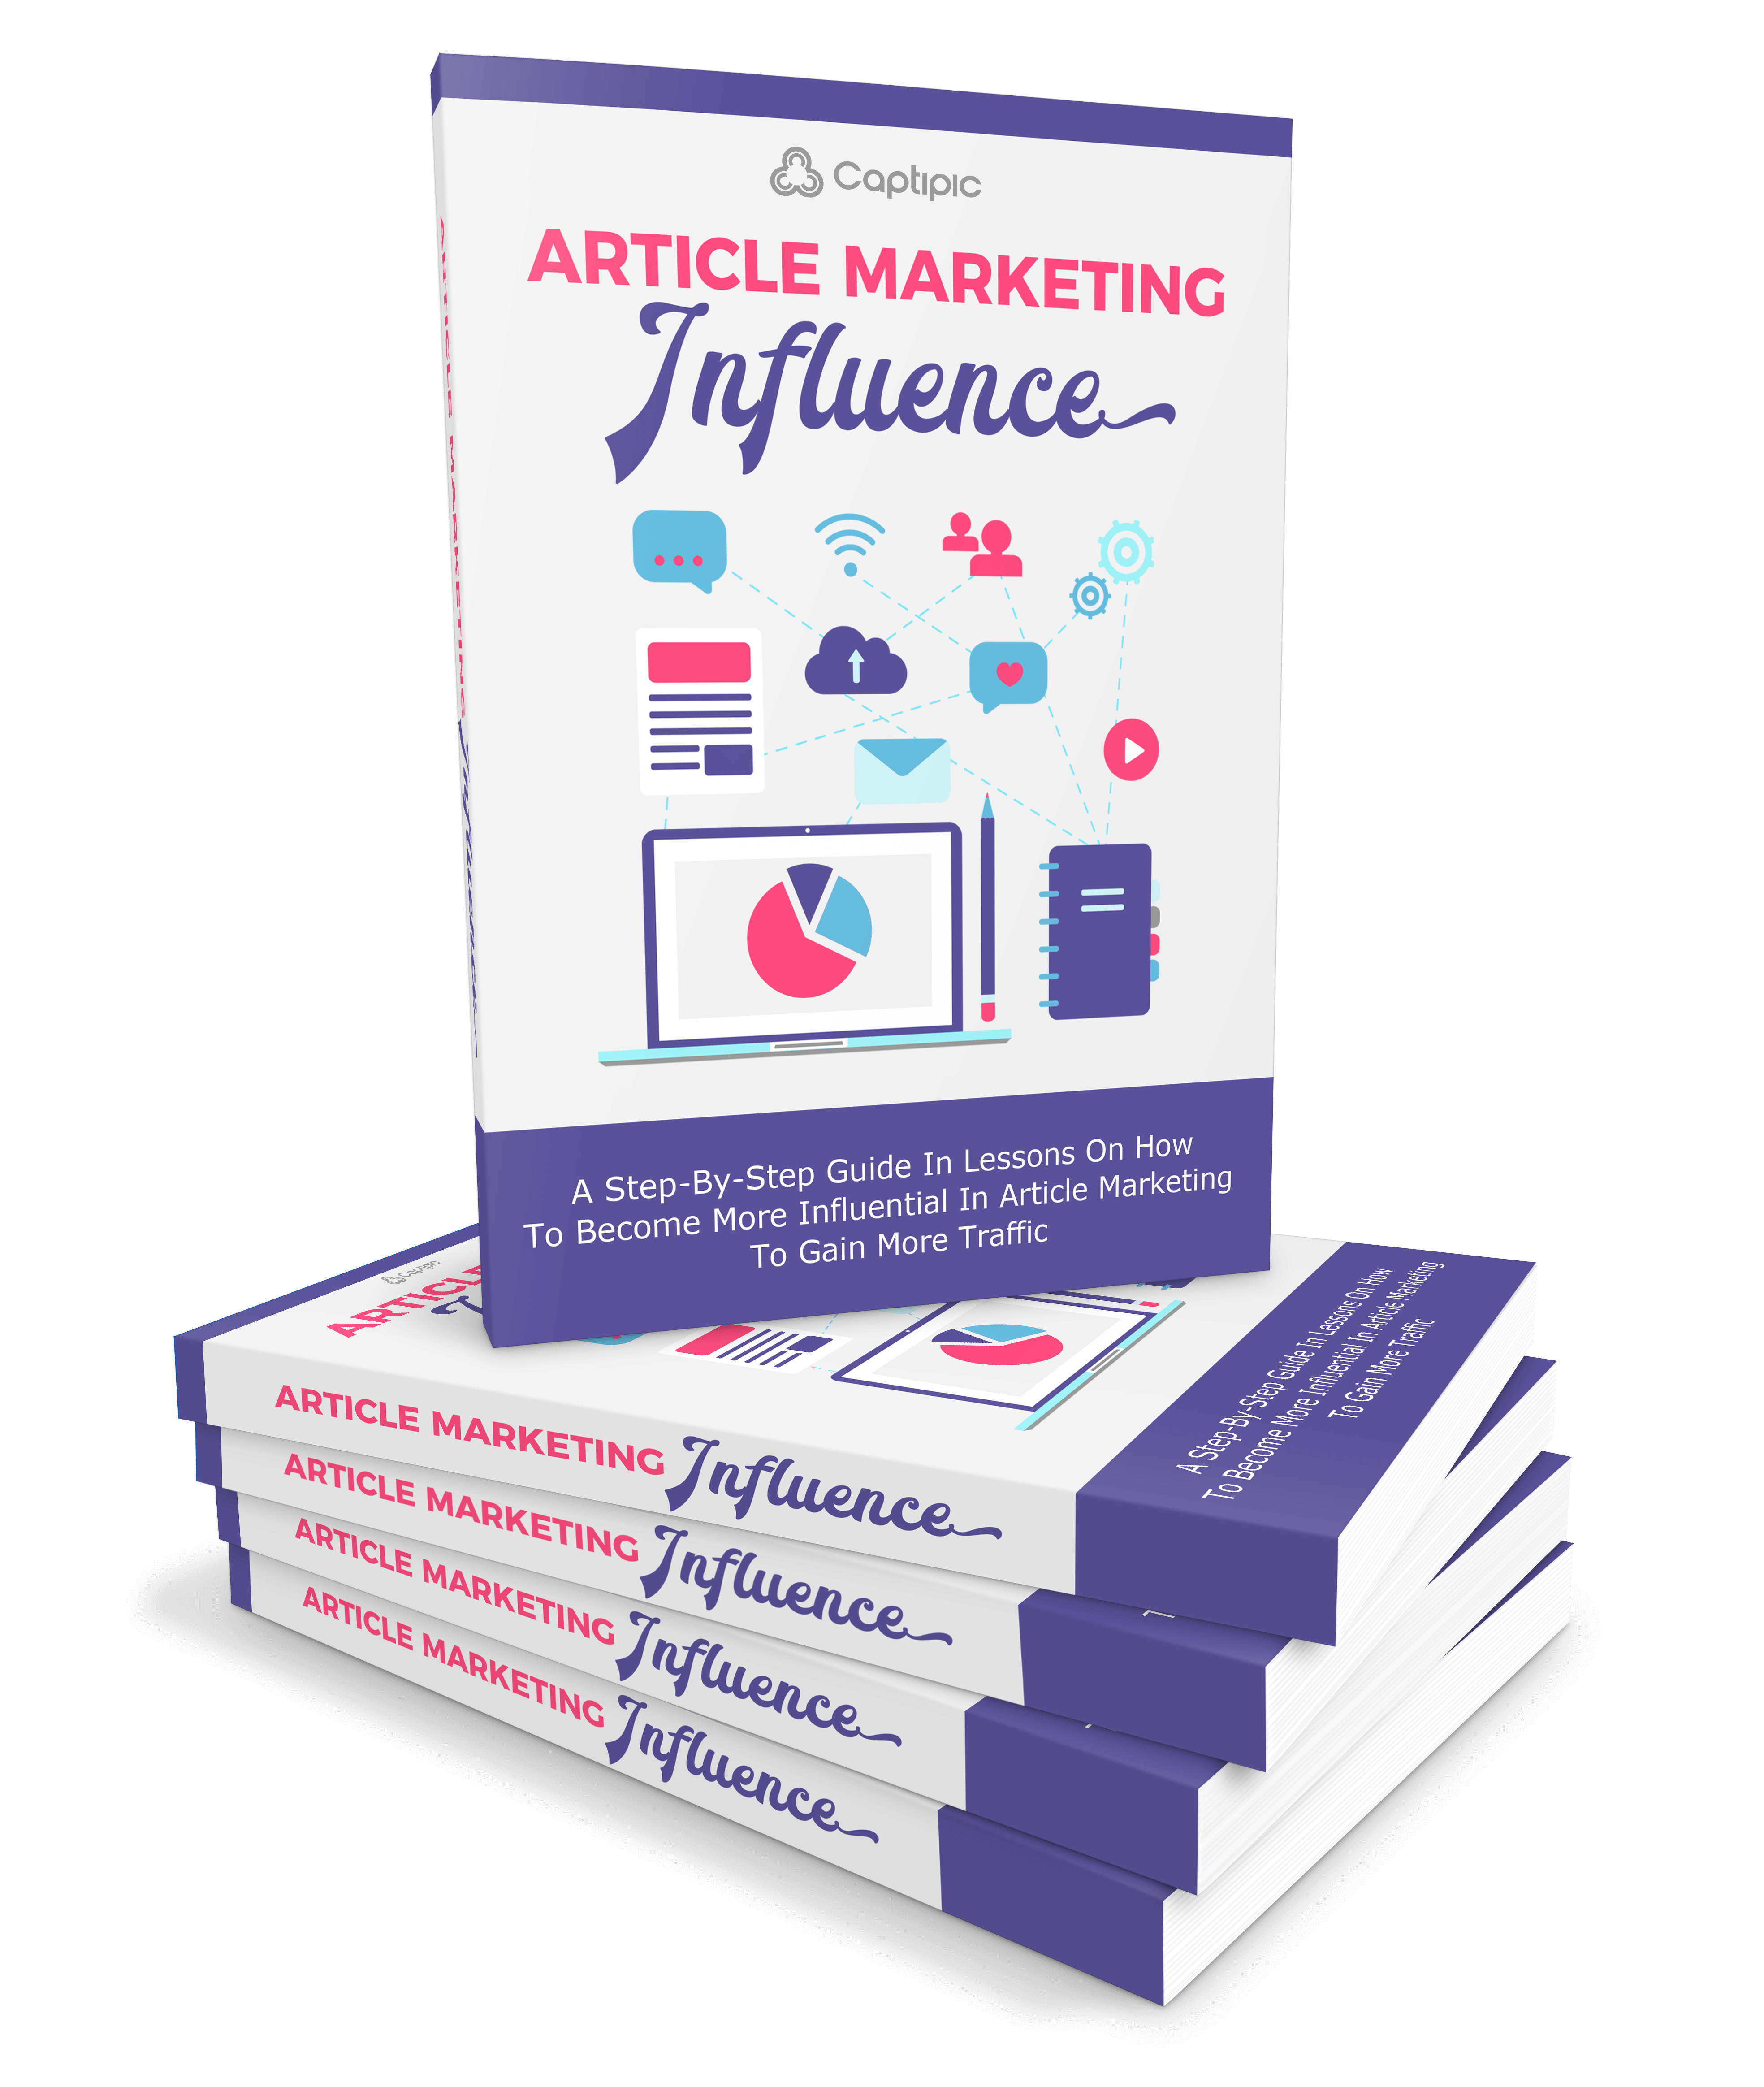 Art Marketing Influence_mrr